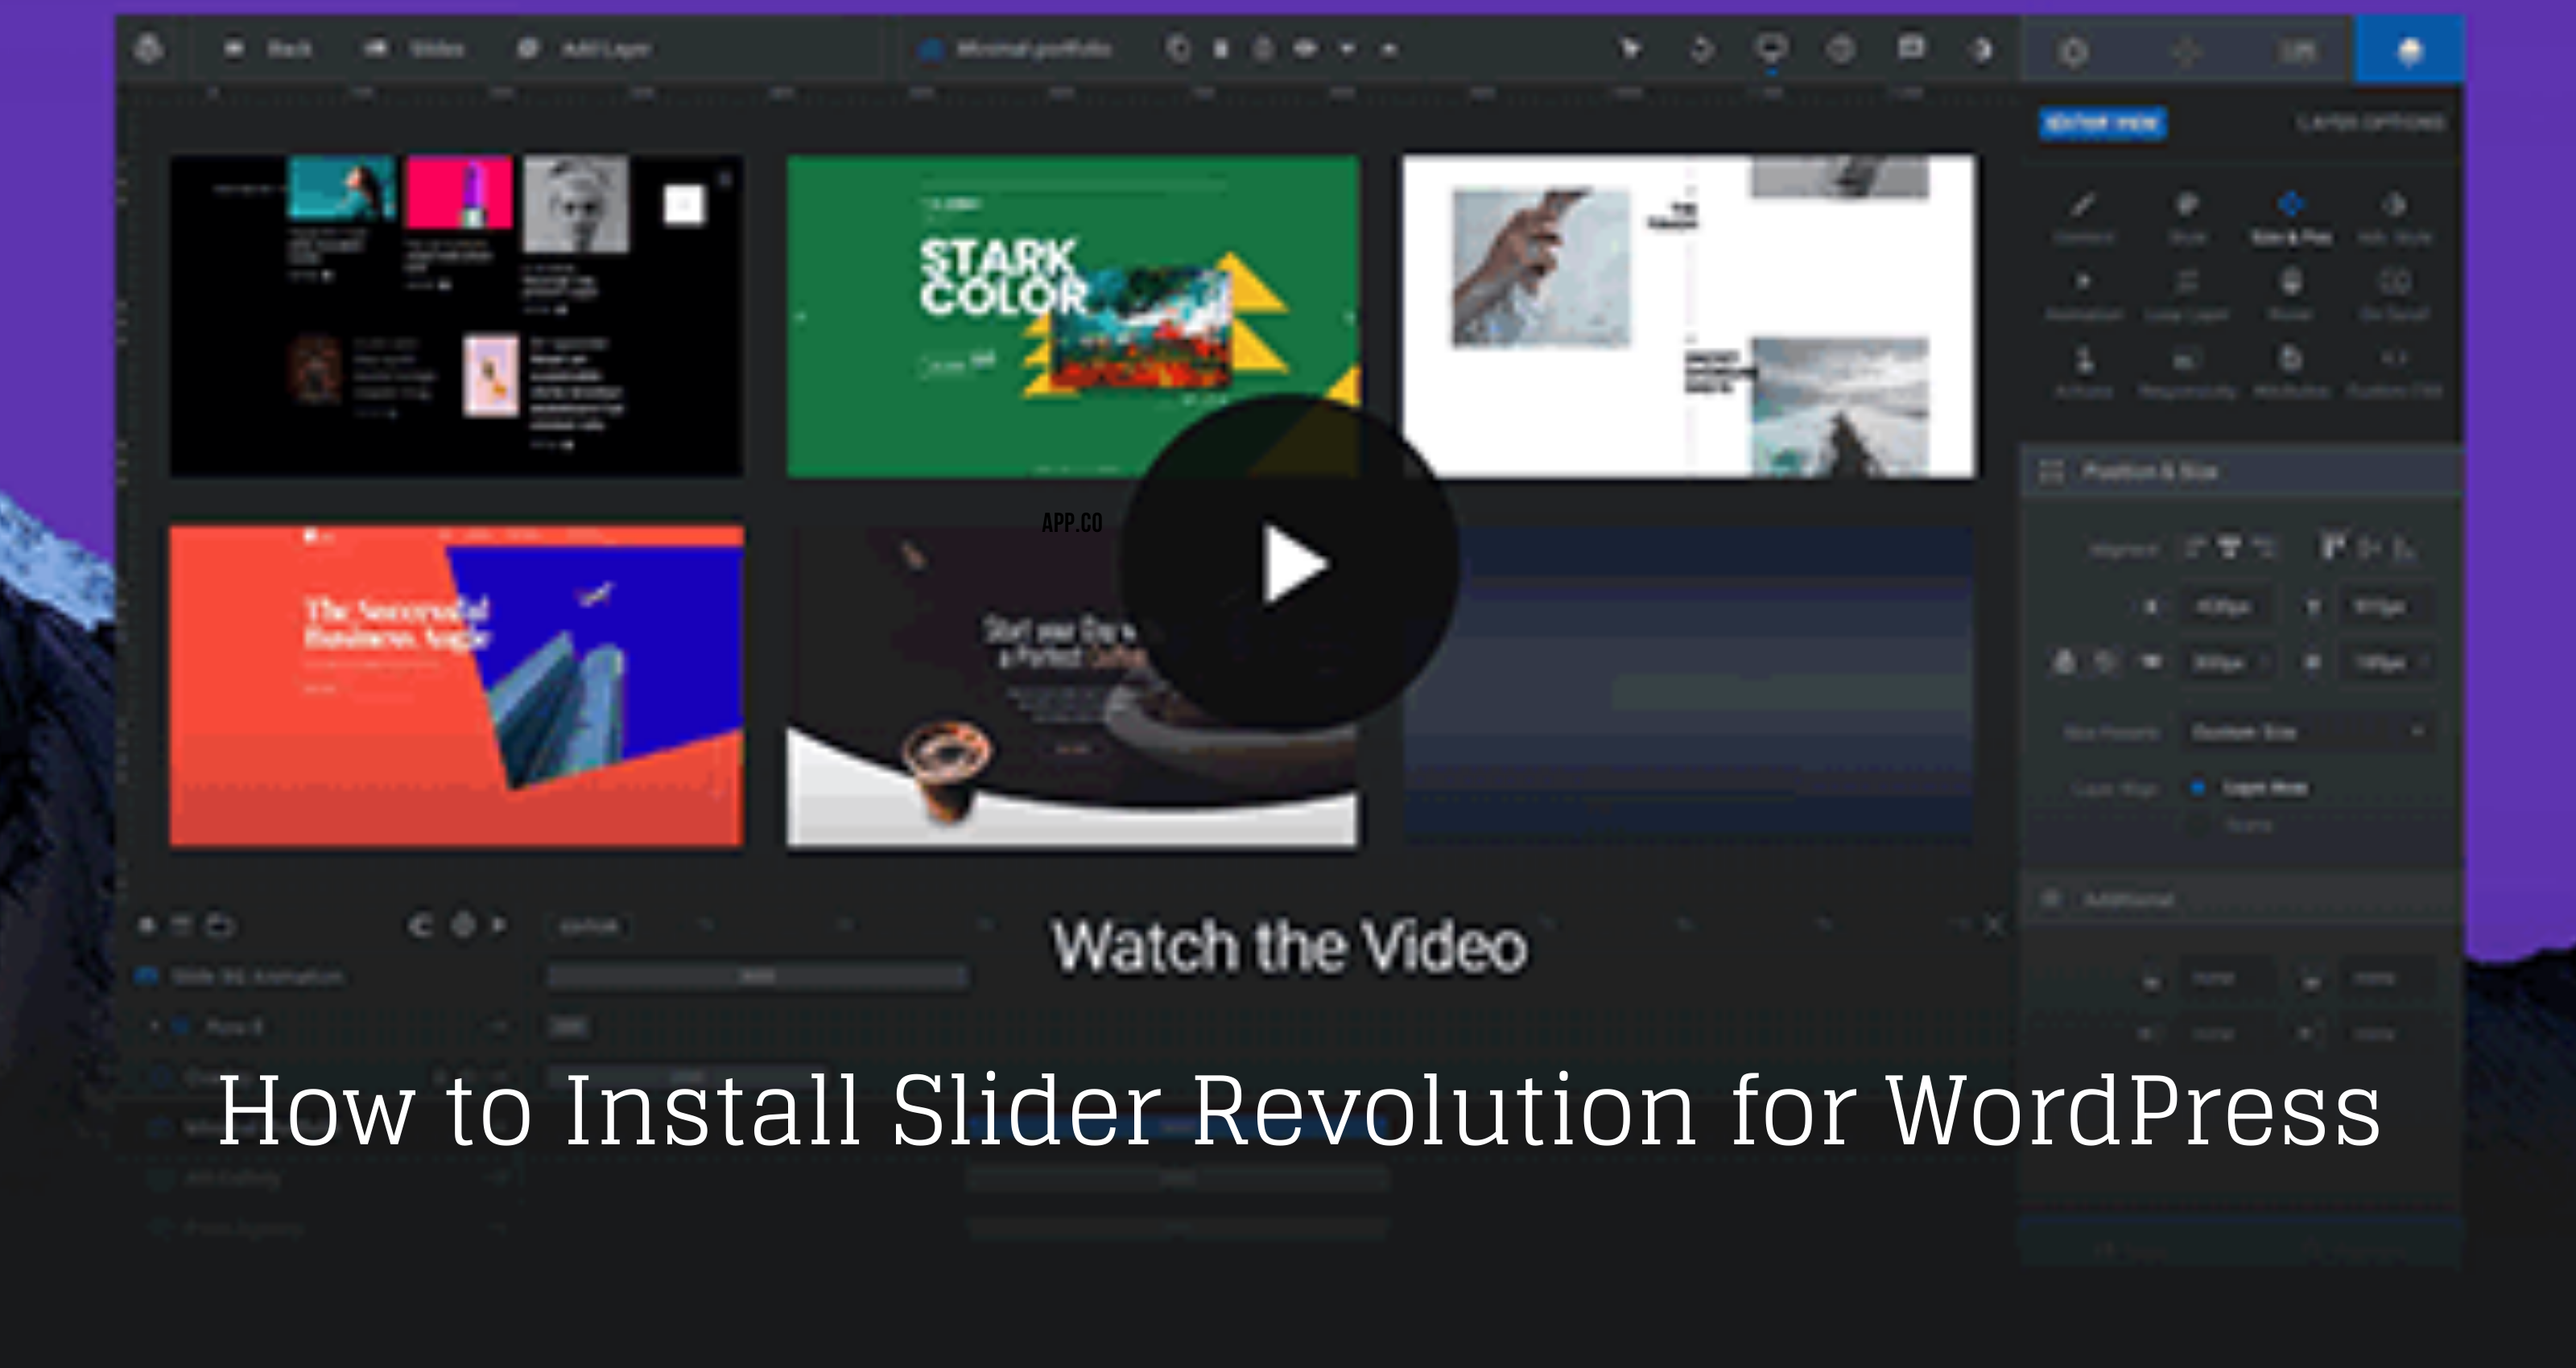 How to Install Slider Revolution for WordPress